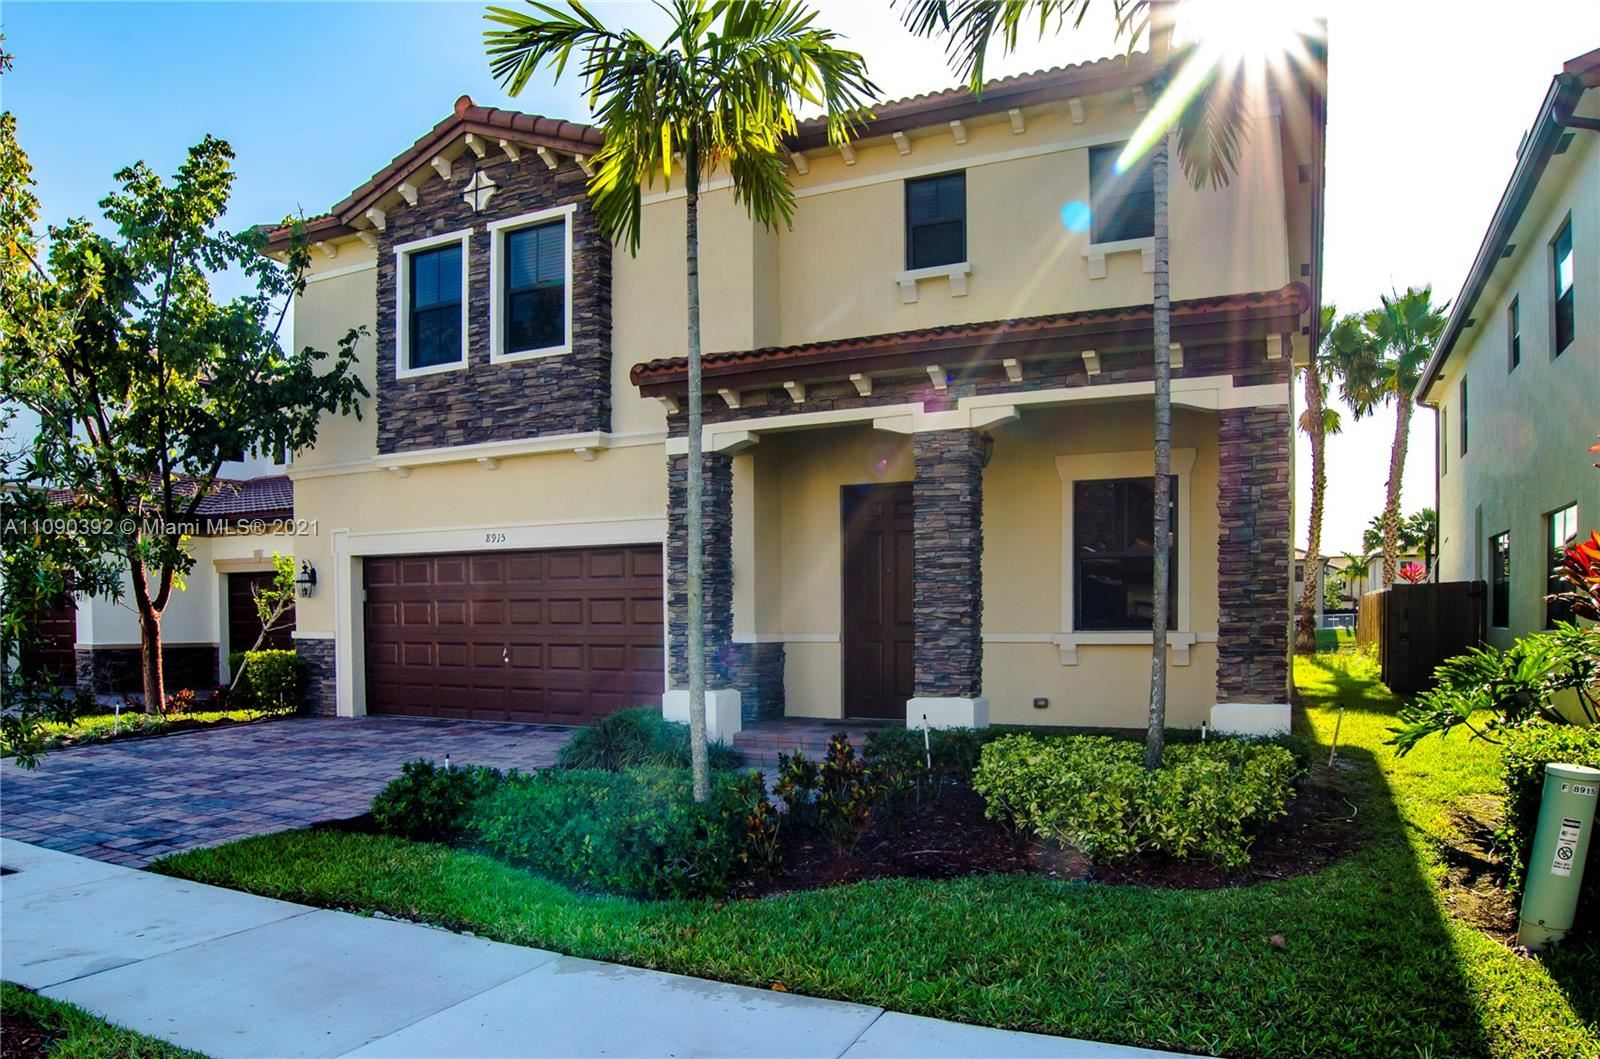 8915 NW 99th Ave, Doral, FL 33178 - #: A11090392